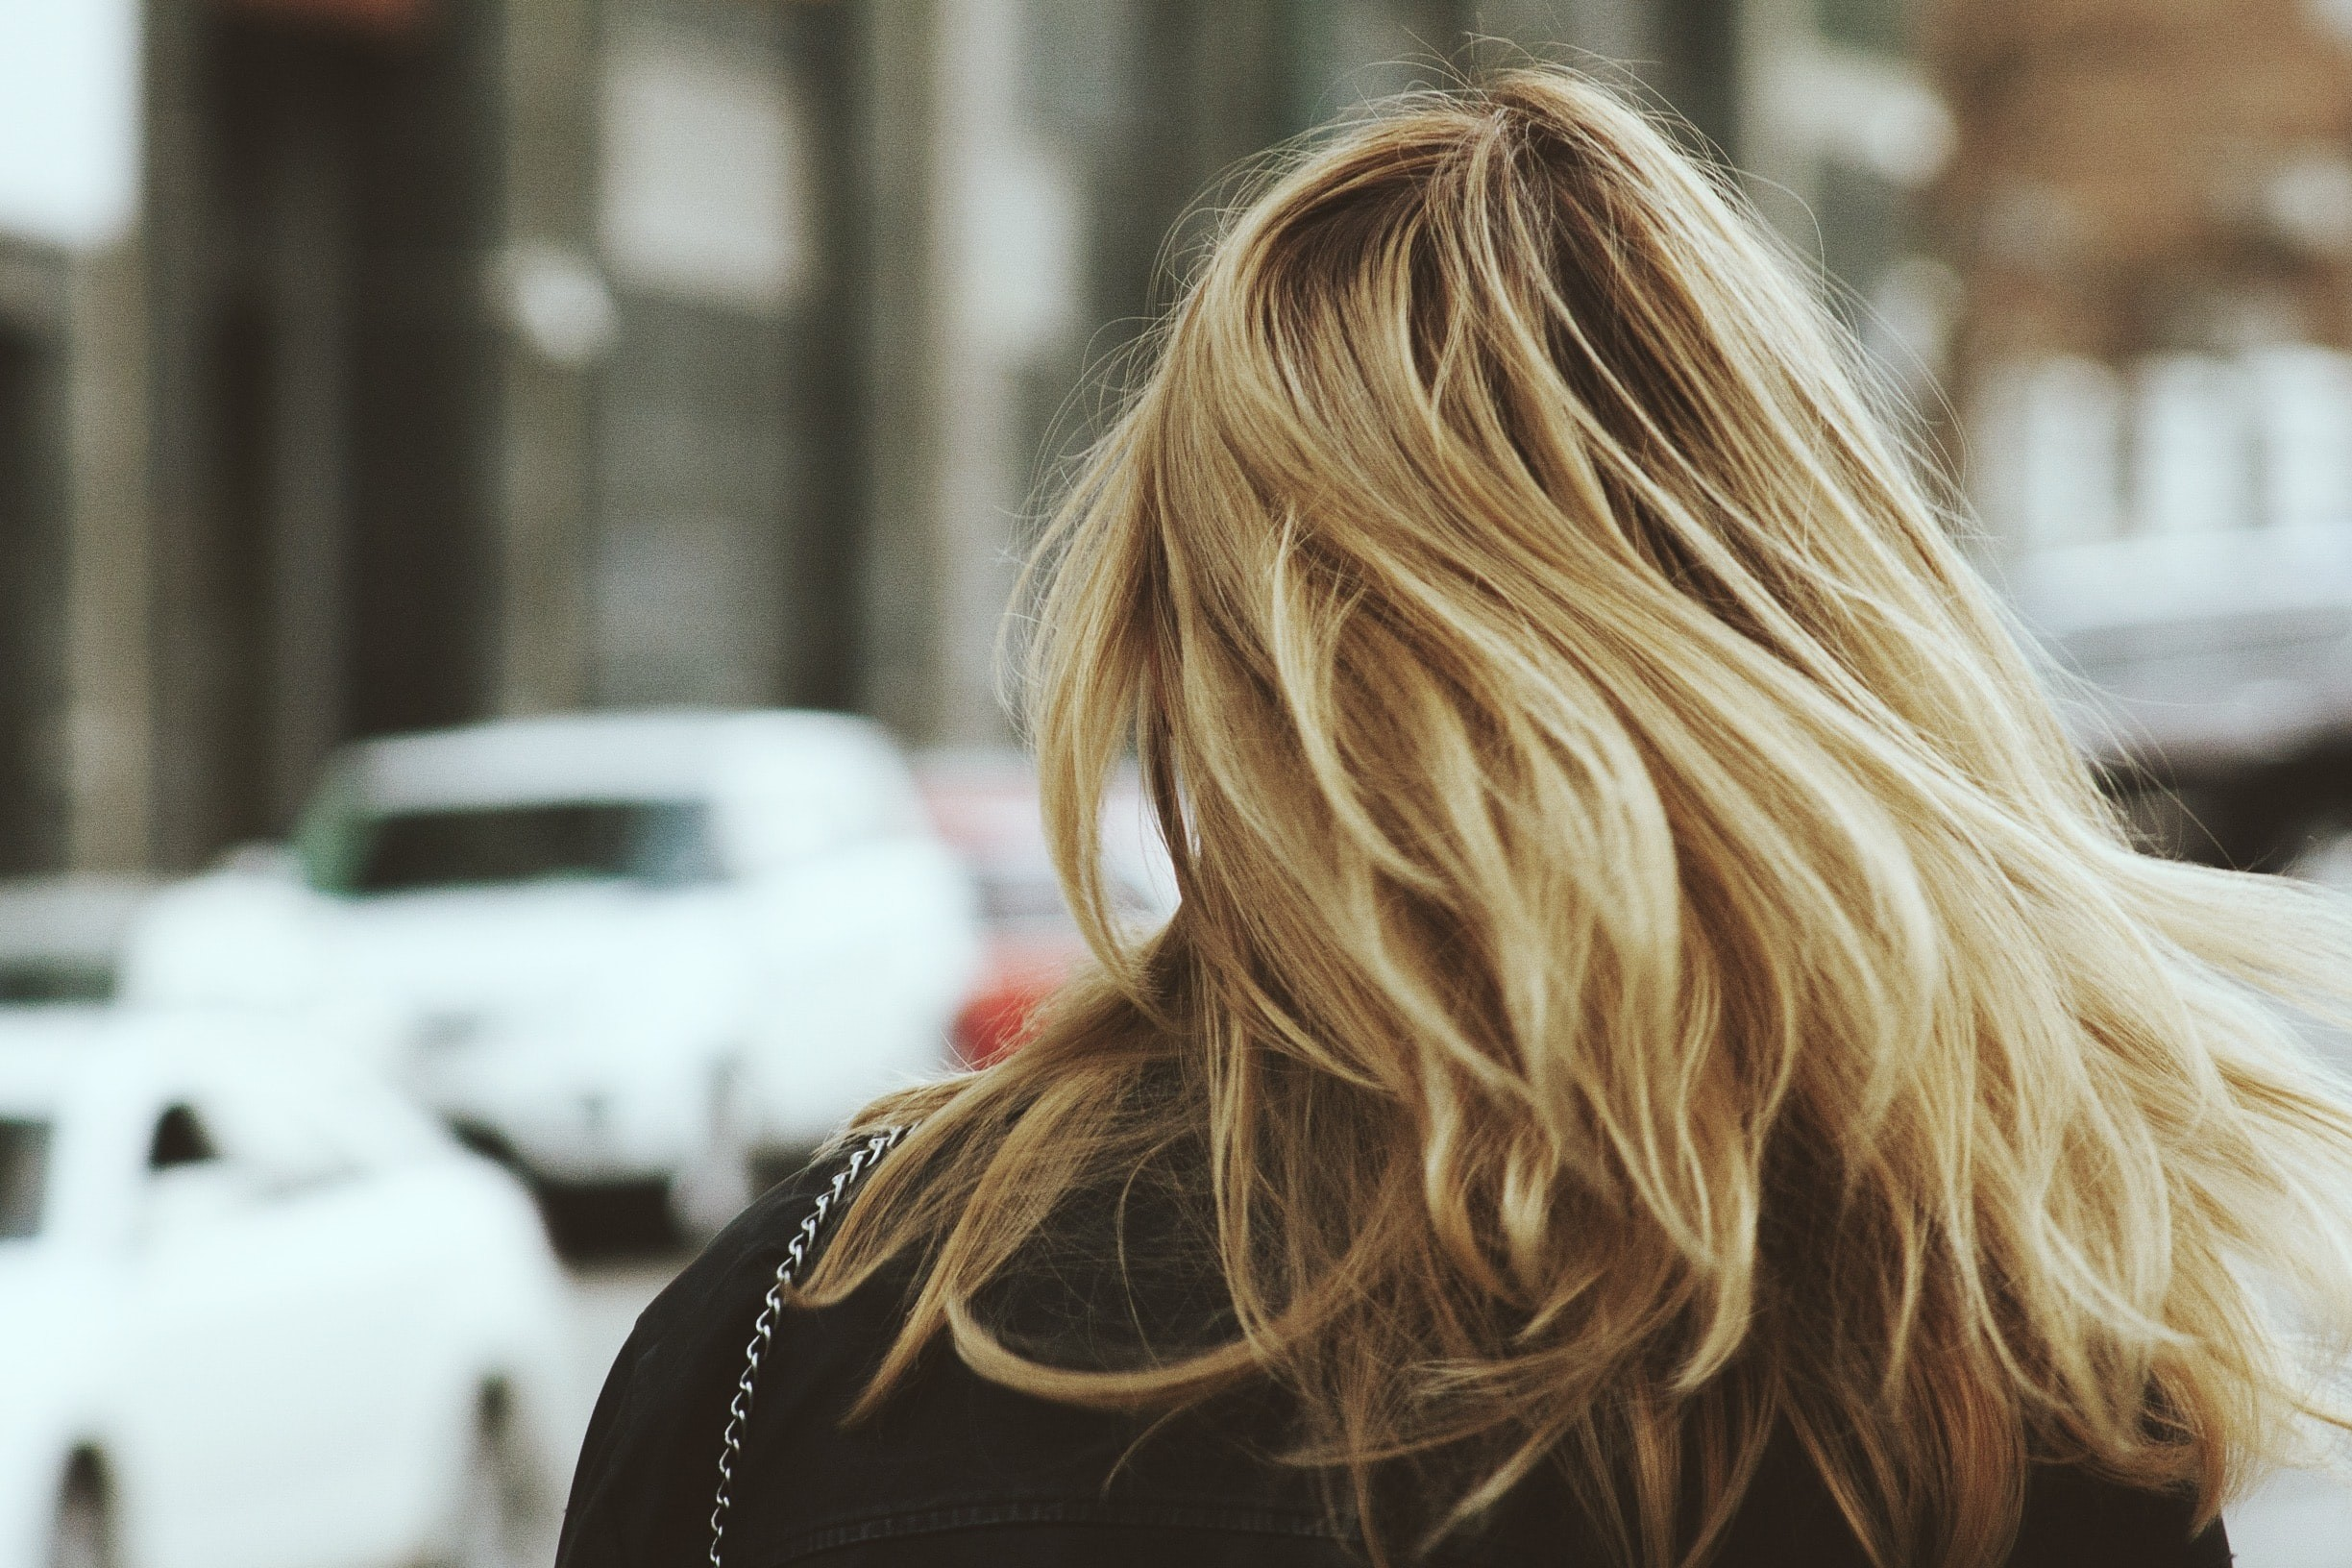 hair myths: woman with blonde hair, pictured walking from behind.